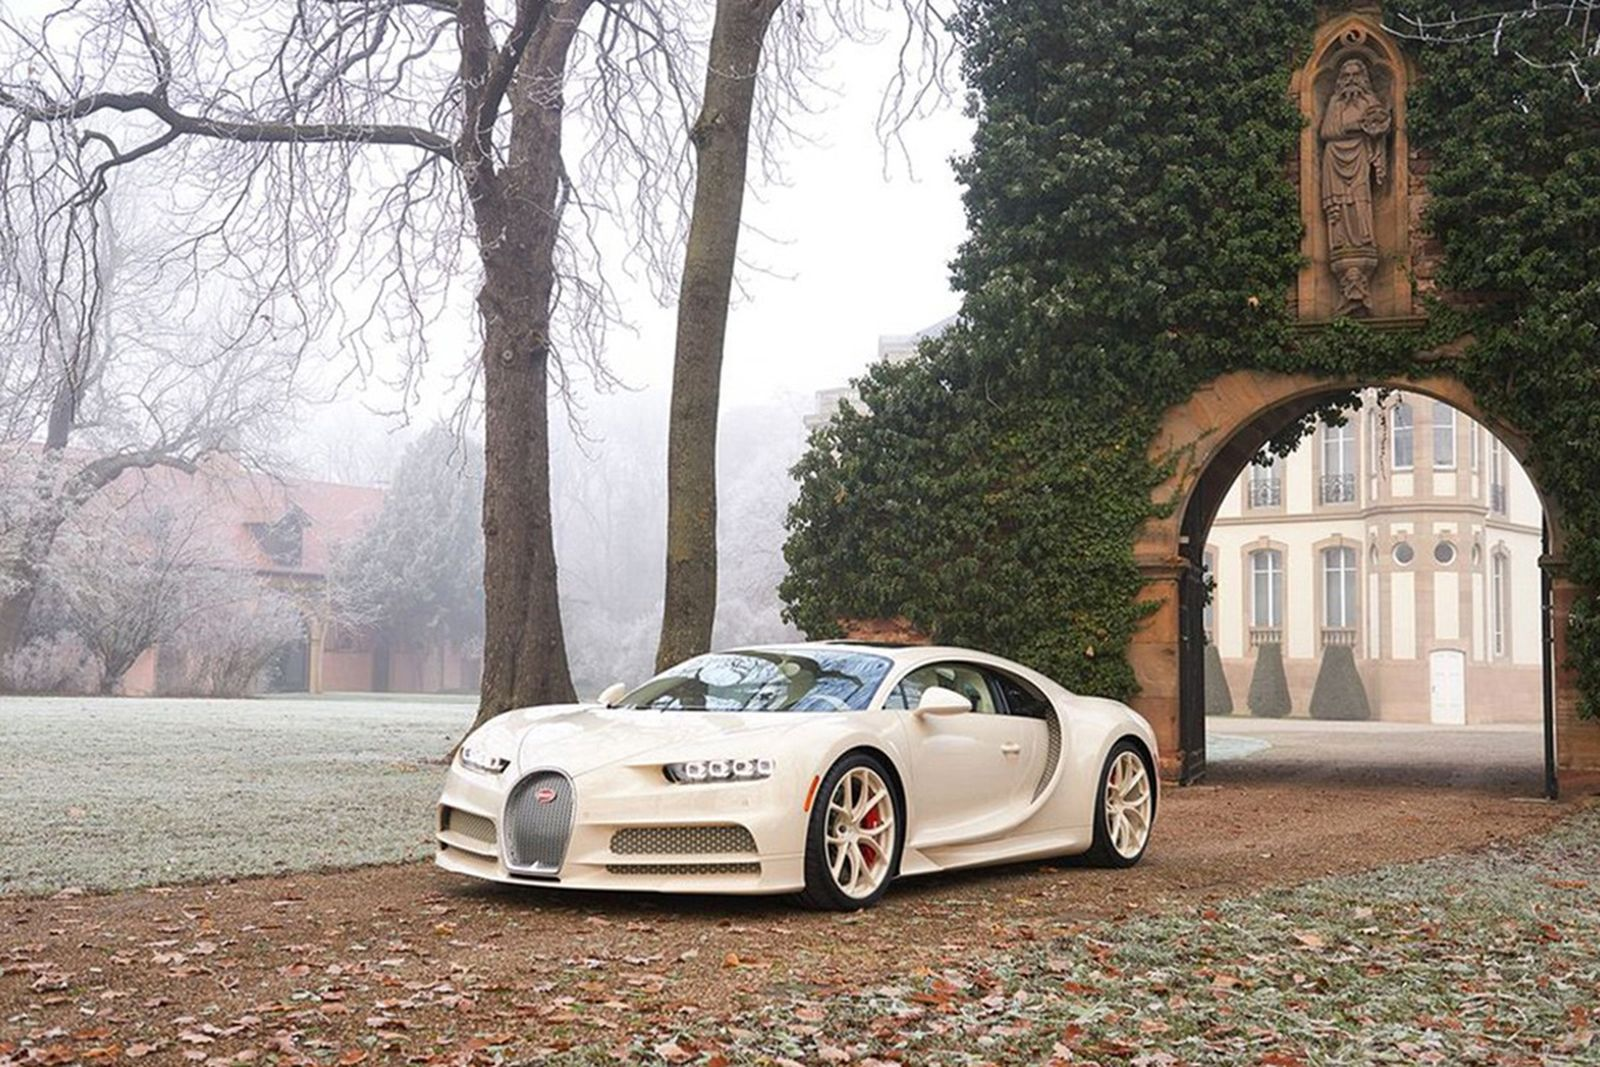 This One-Off Bugatti Chiron Hermès Is Truly a Work of Art